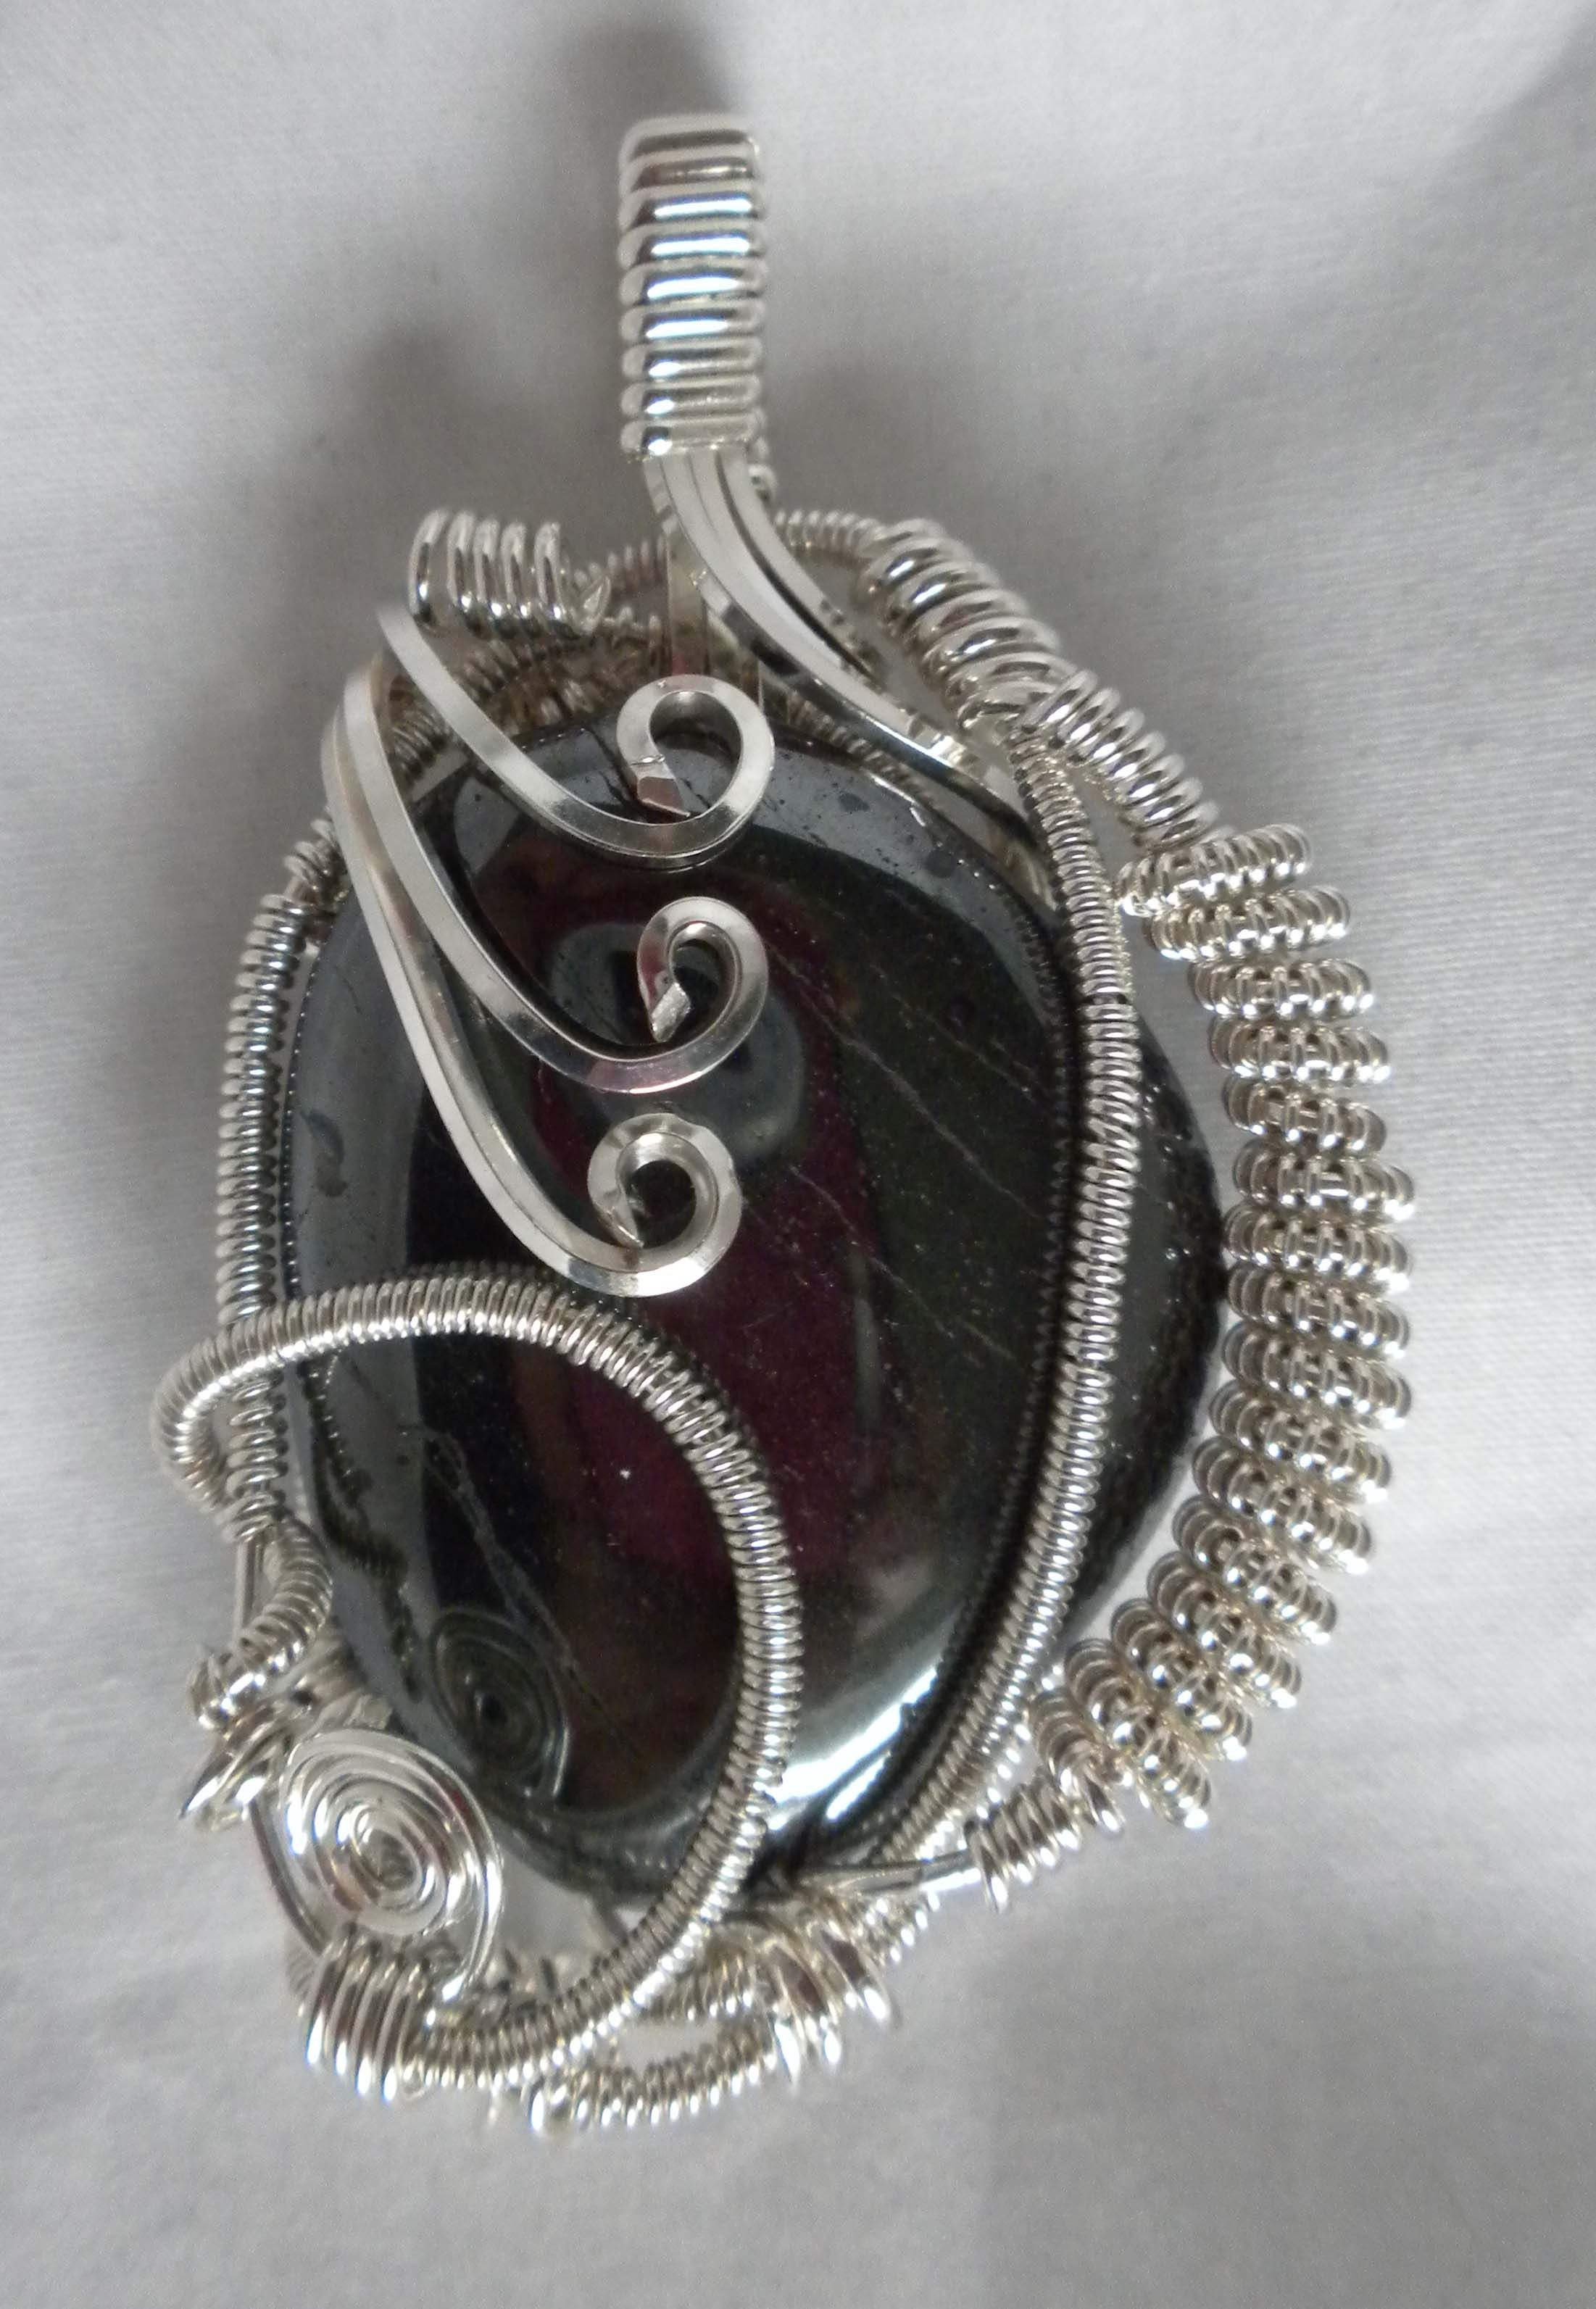 Wire wrapping stones, a great technique